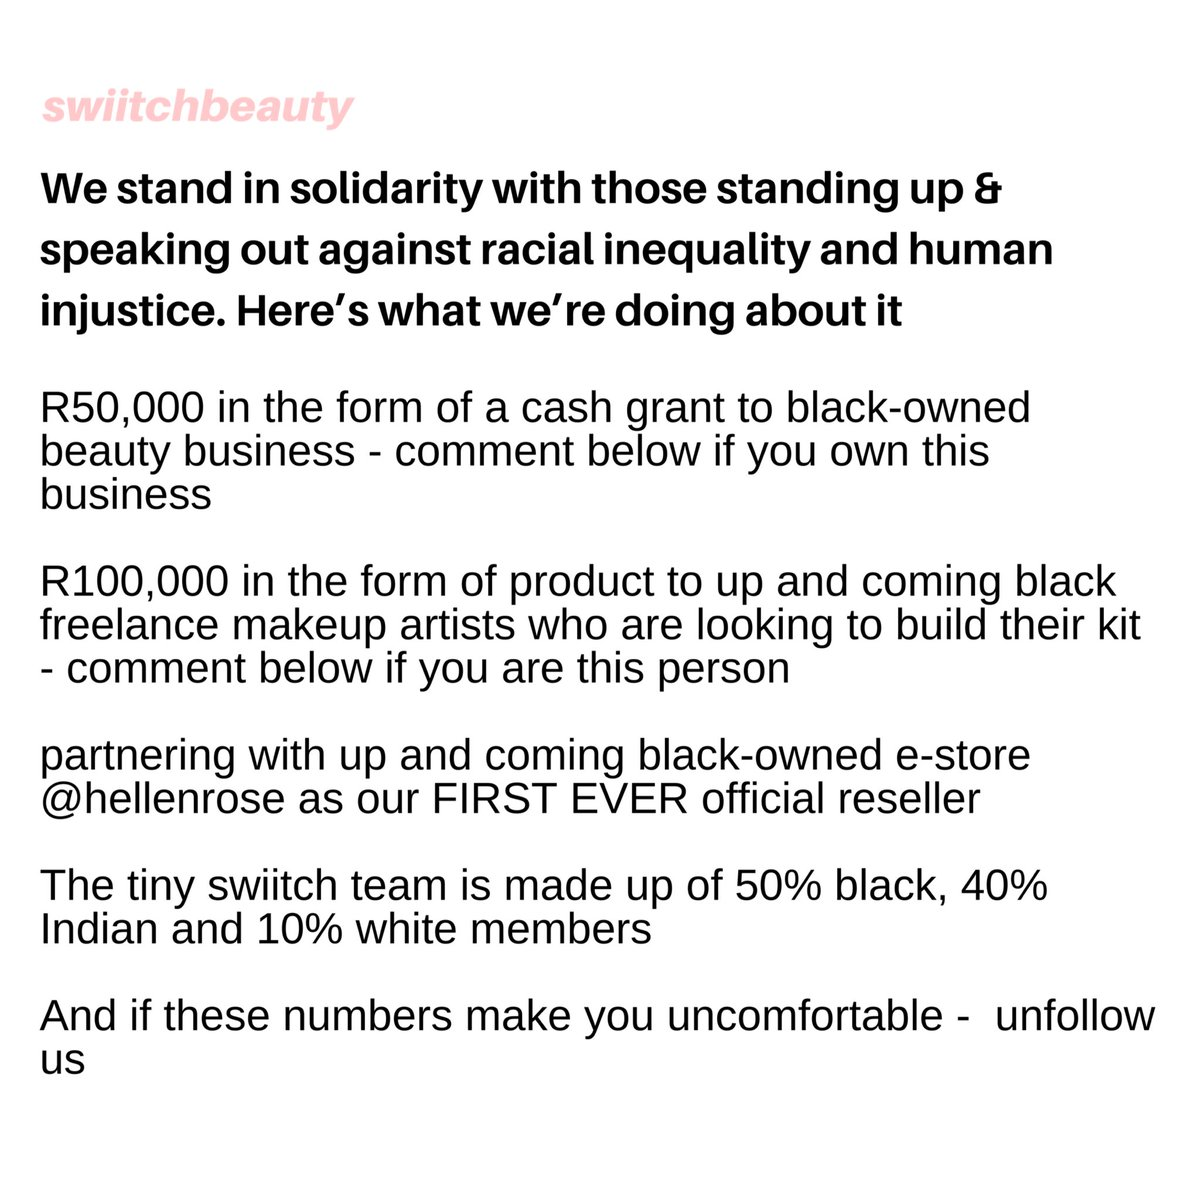 if you're a black owned beauty business / black freelance makeup artist - read this 👇🏽 cc @swiitchbeauty